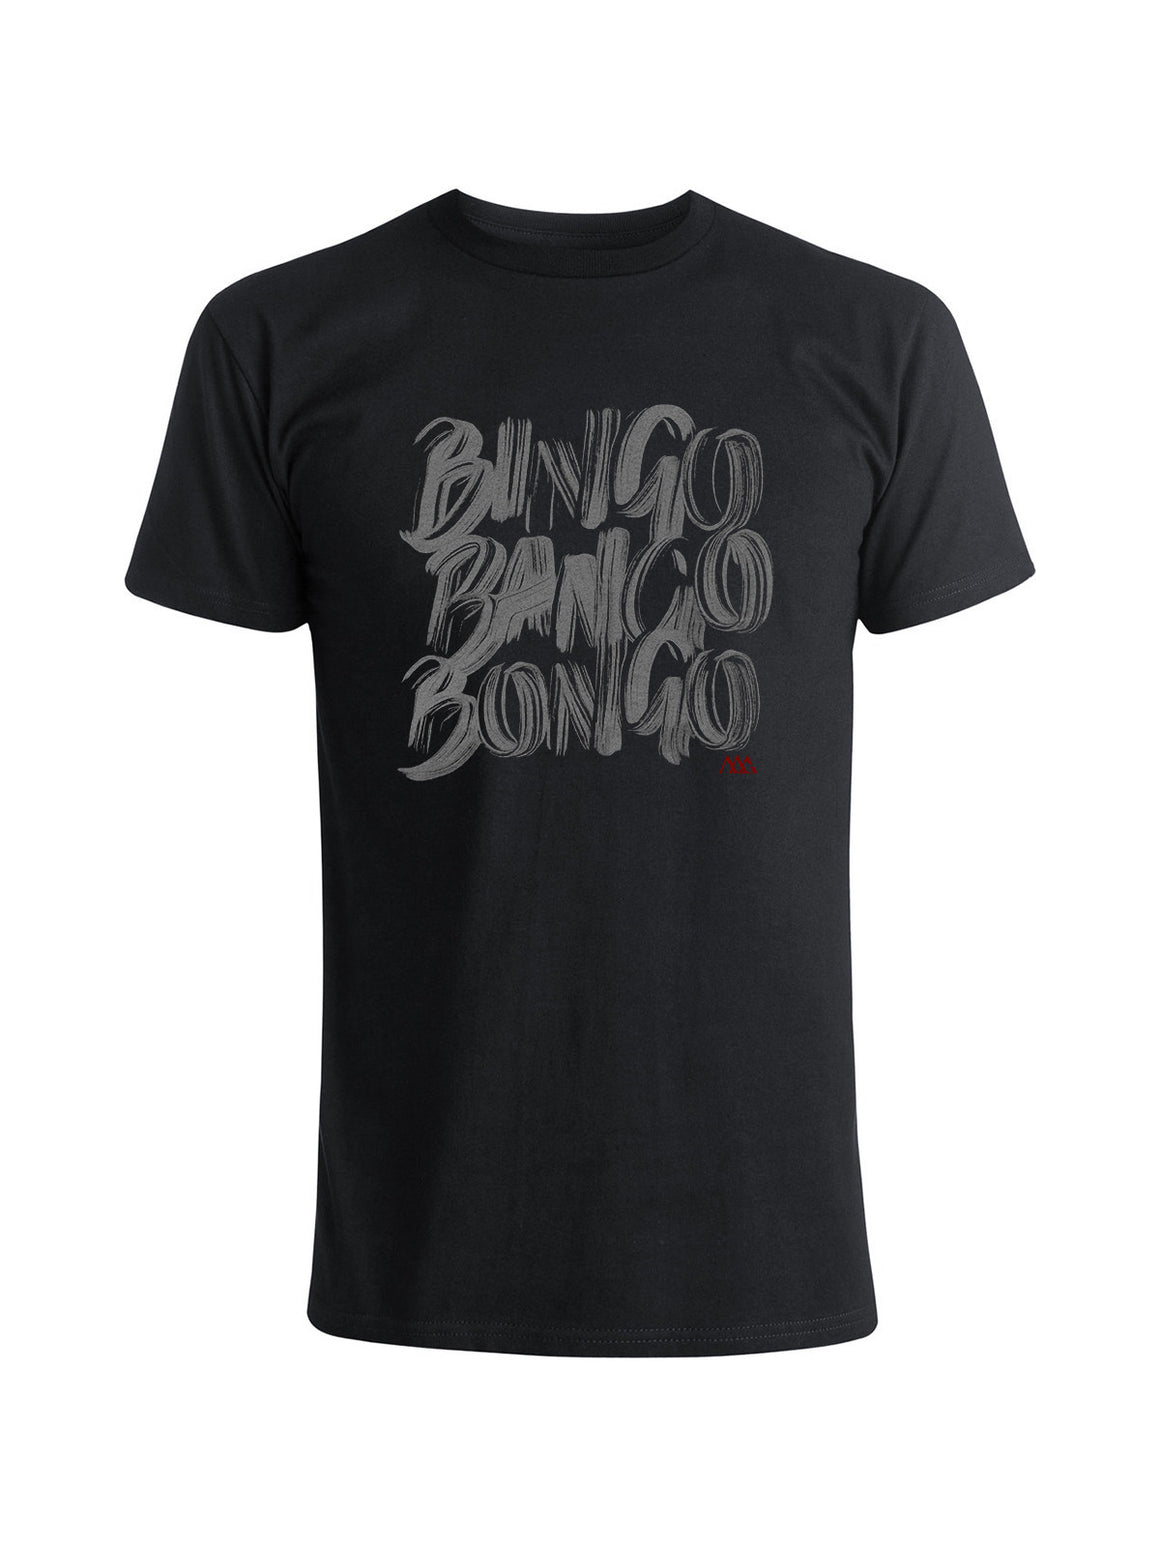 Bingo Tee Shirt - Navy Heather (Smoke)